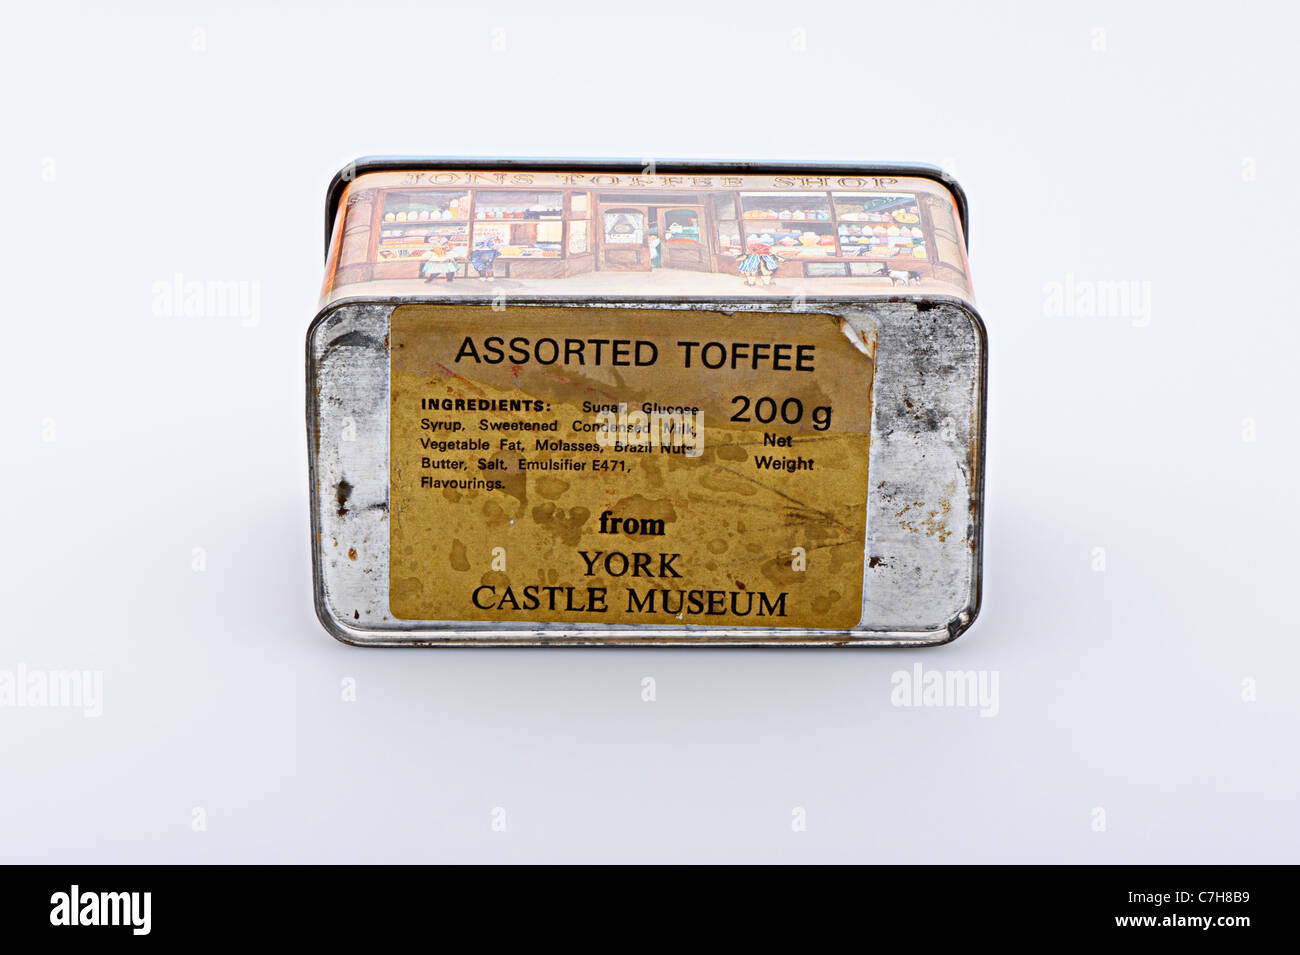 Old Toffee box  70's York Castle Museum, isolated on light grey background with shadow - Stock Image